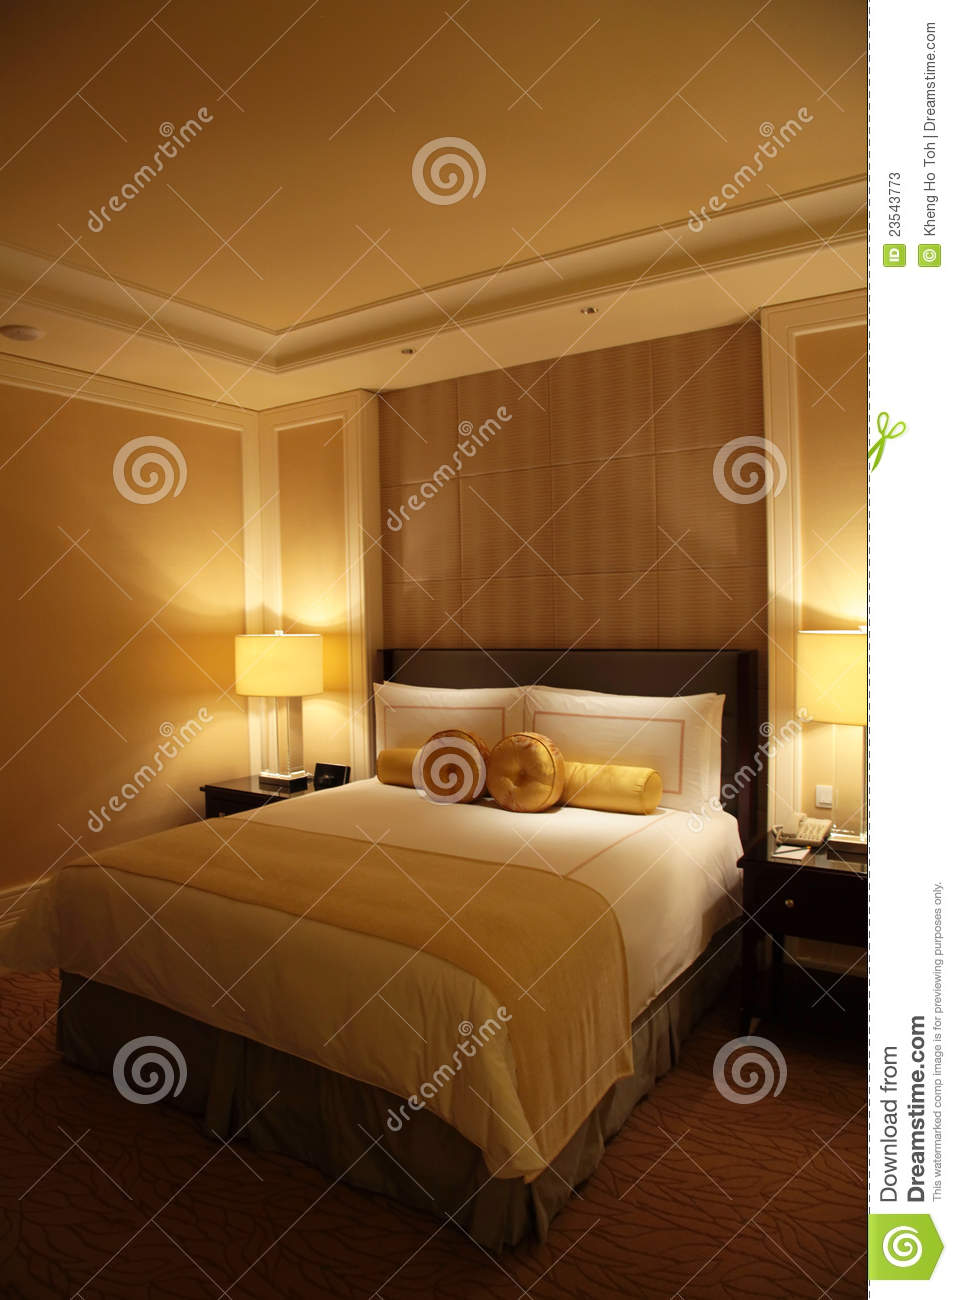 Chambre d 39 h tel de luxe photos stock image 23543773 for Chambre d hotel nice